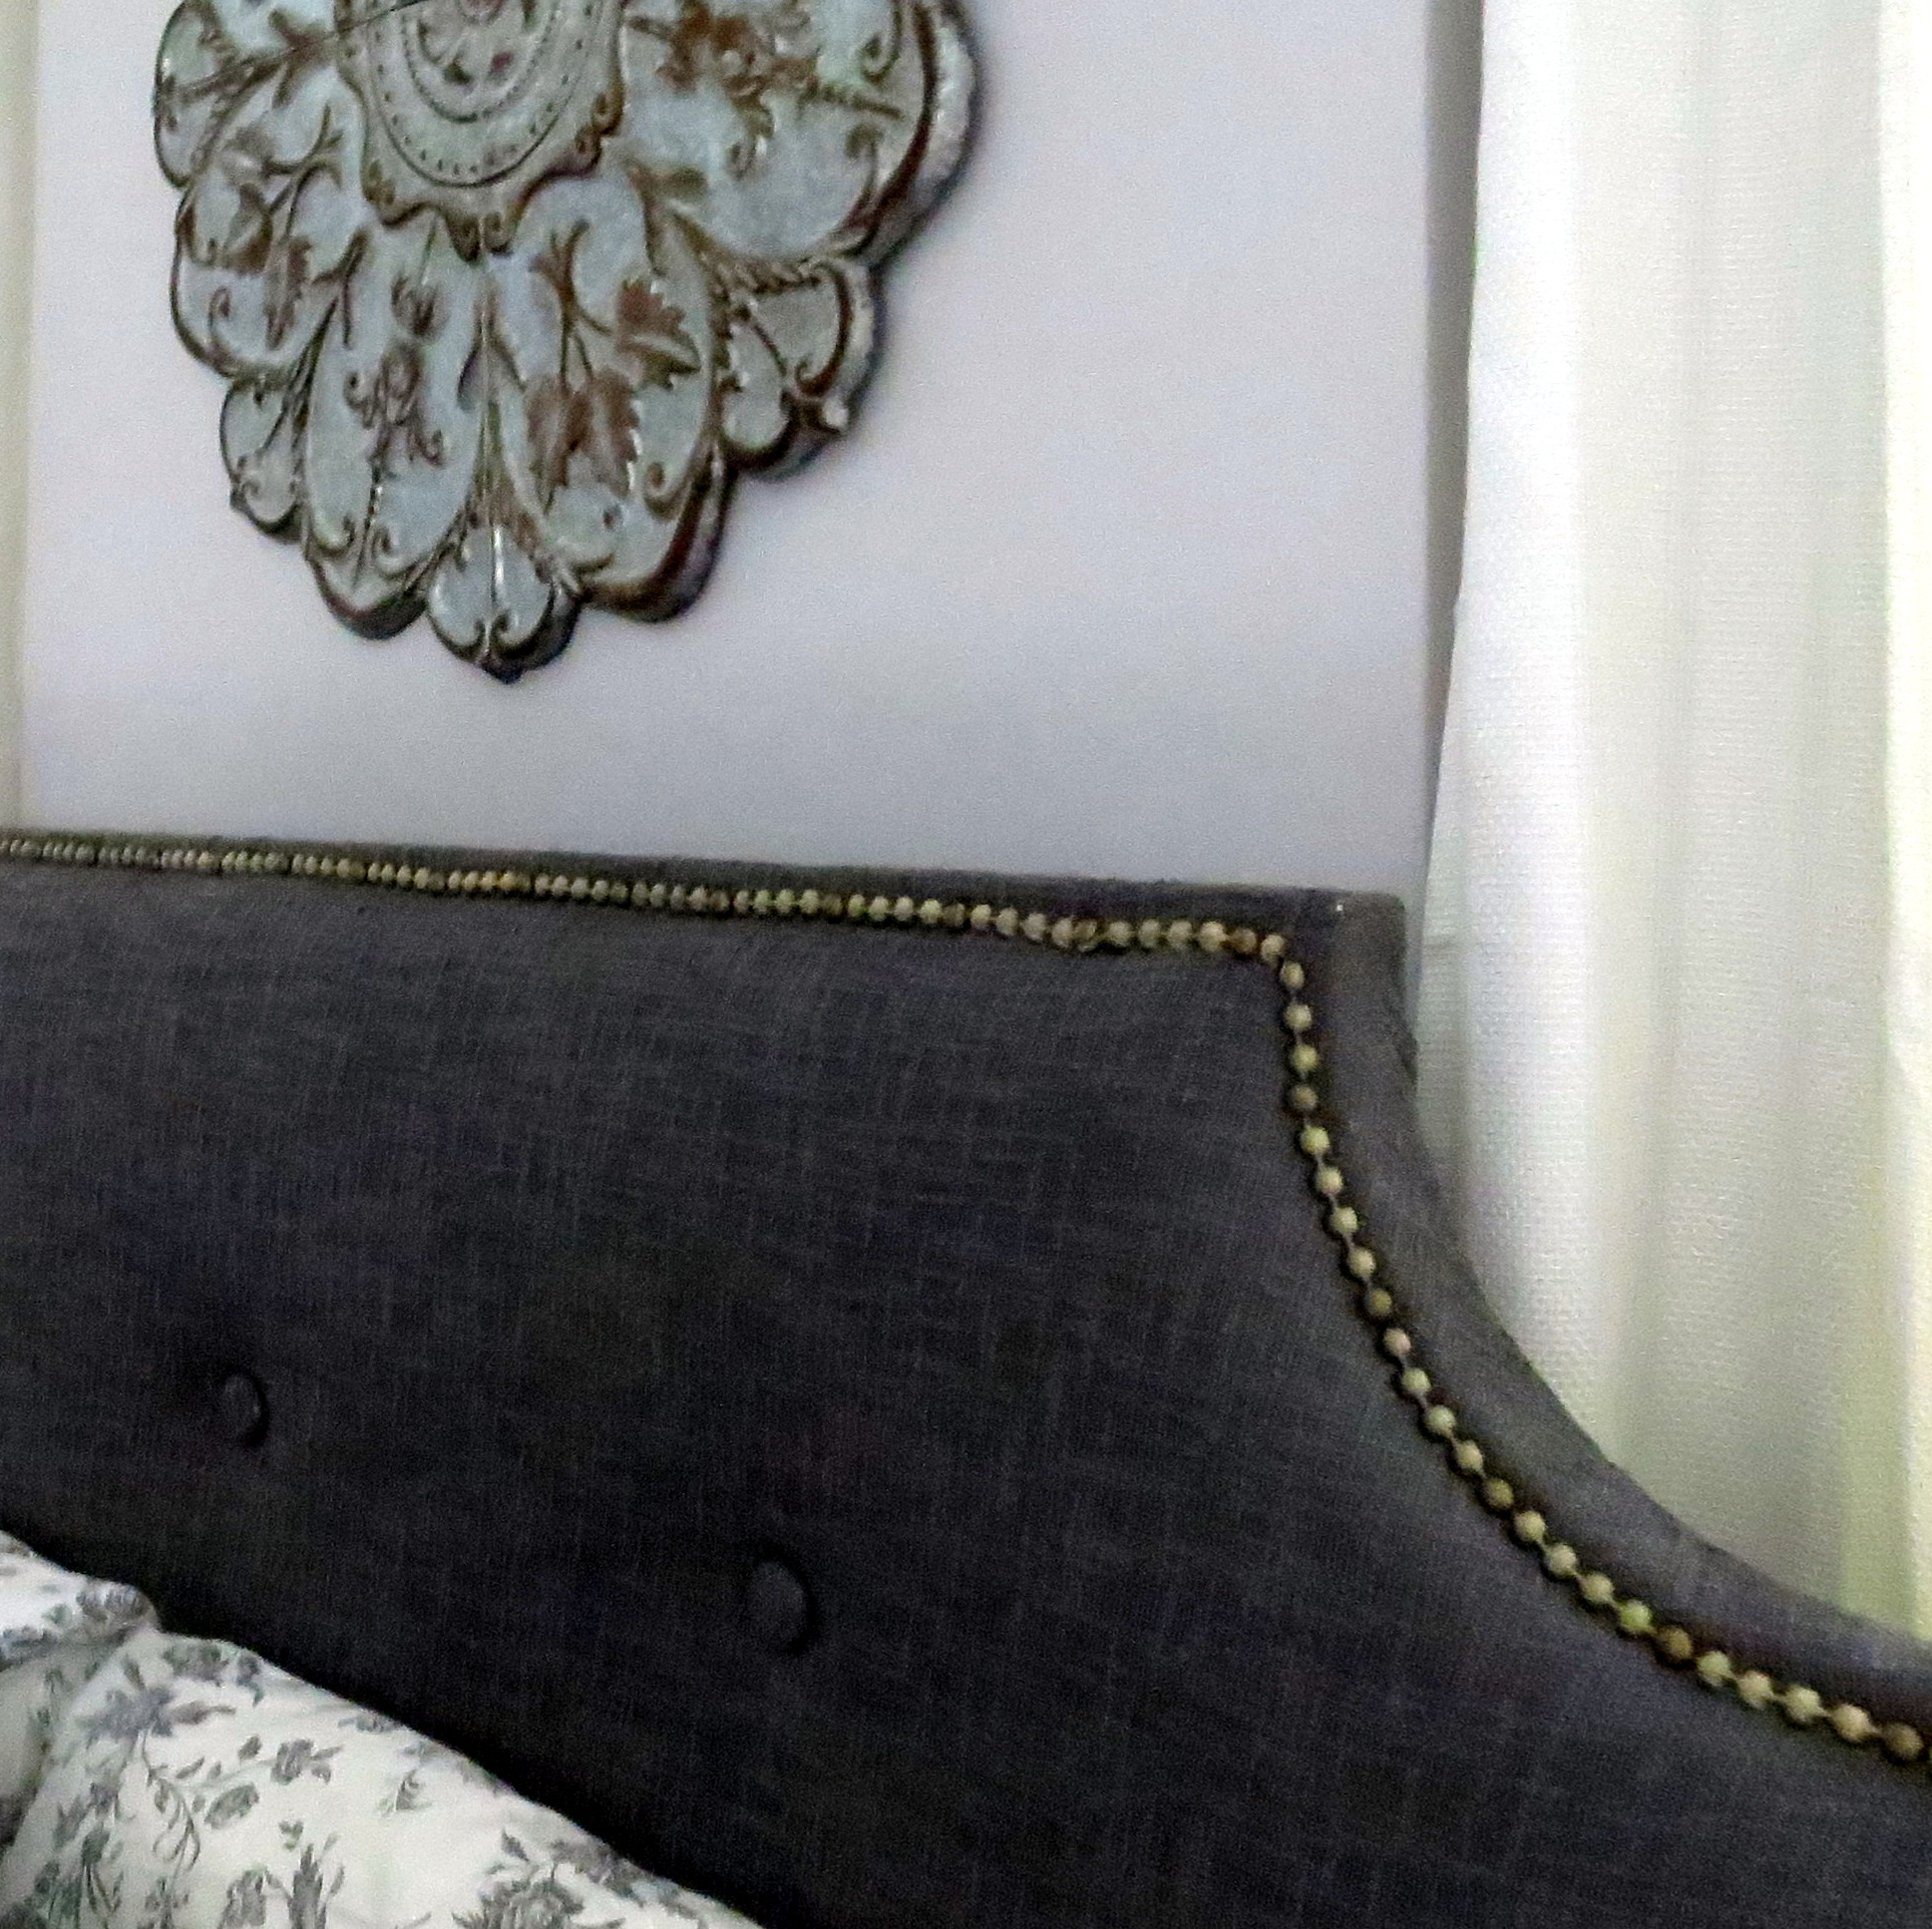 Making An Upholstered Headboard With Nailhead Trim Diy Upholstered Headboard With Tufting And Nailhead Trim